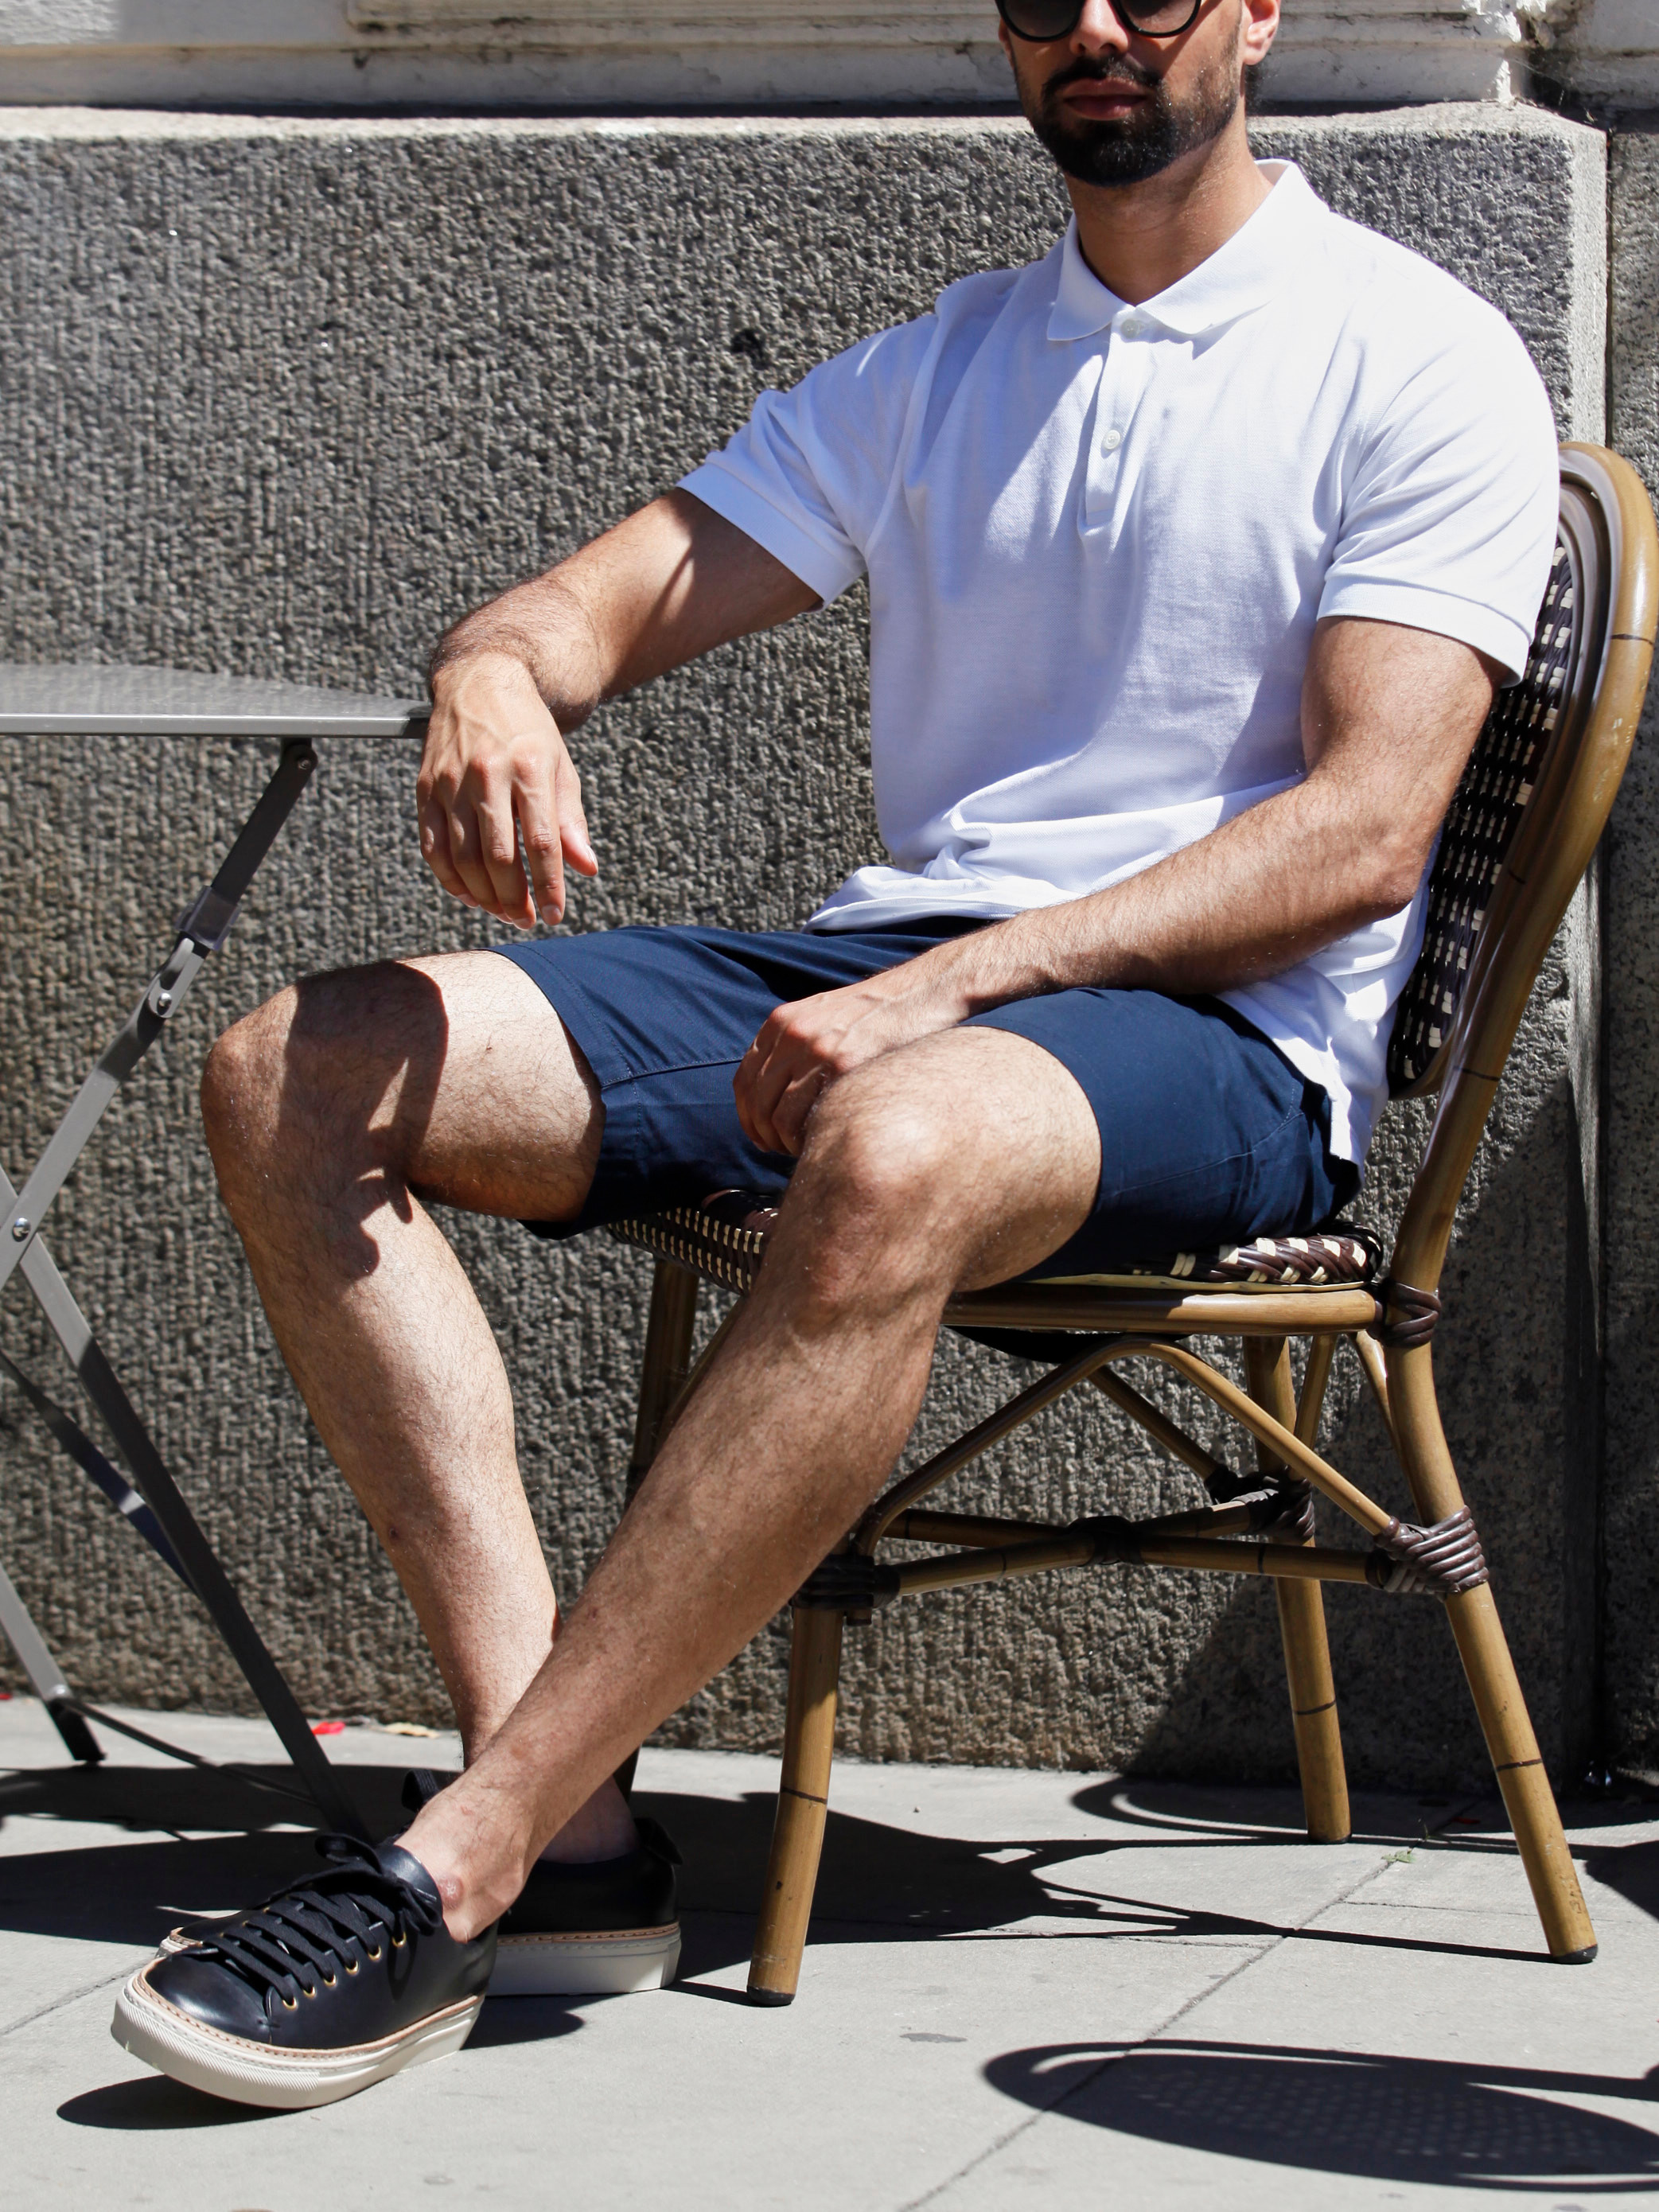 Men's outfit idea for 2021 with white polo, navy shorts, black sunglasses, black trainers. Suitable for summer.